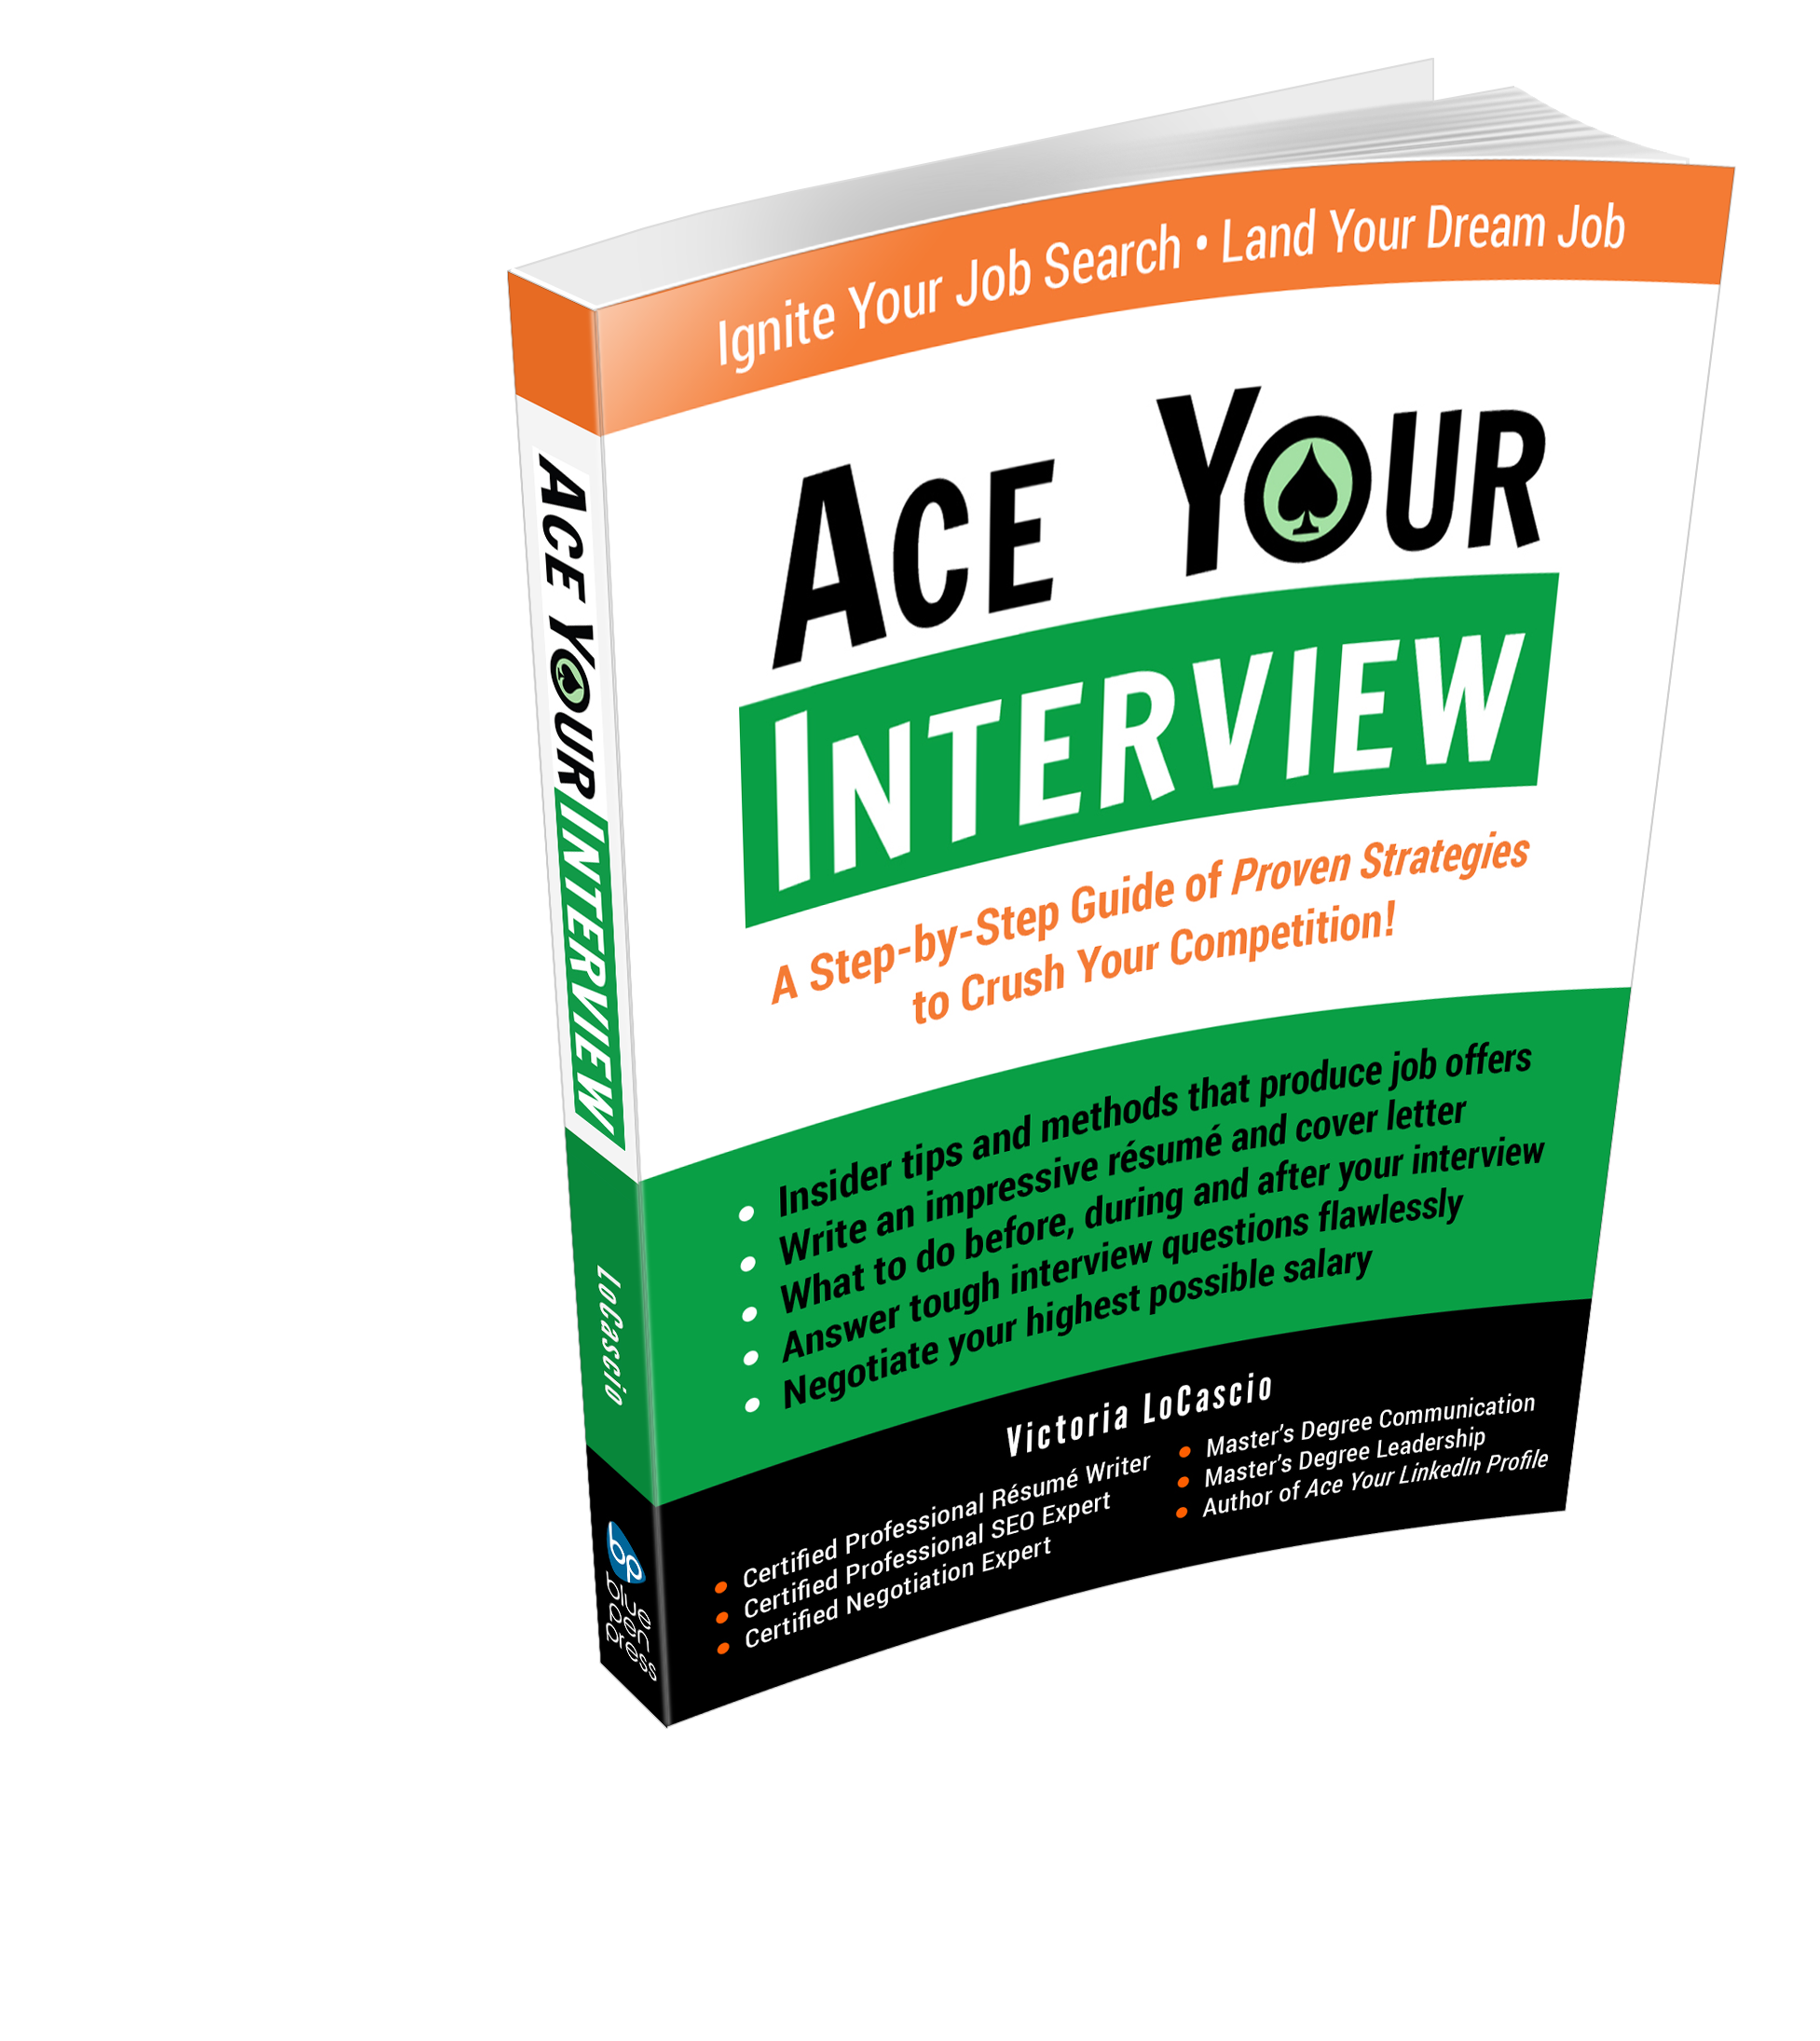 Ace Your Interview Book Victoria LoCascio The Aces Company